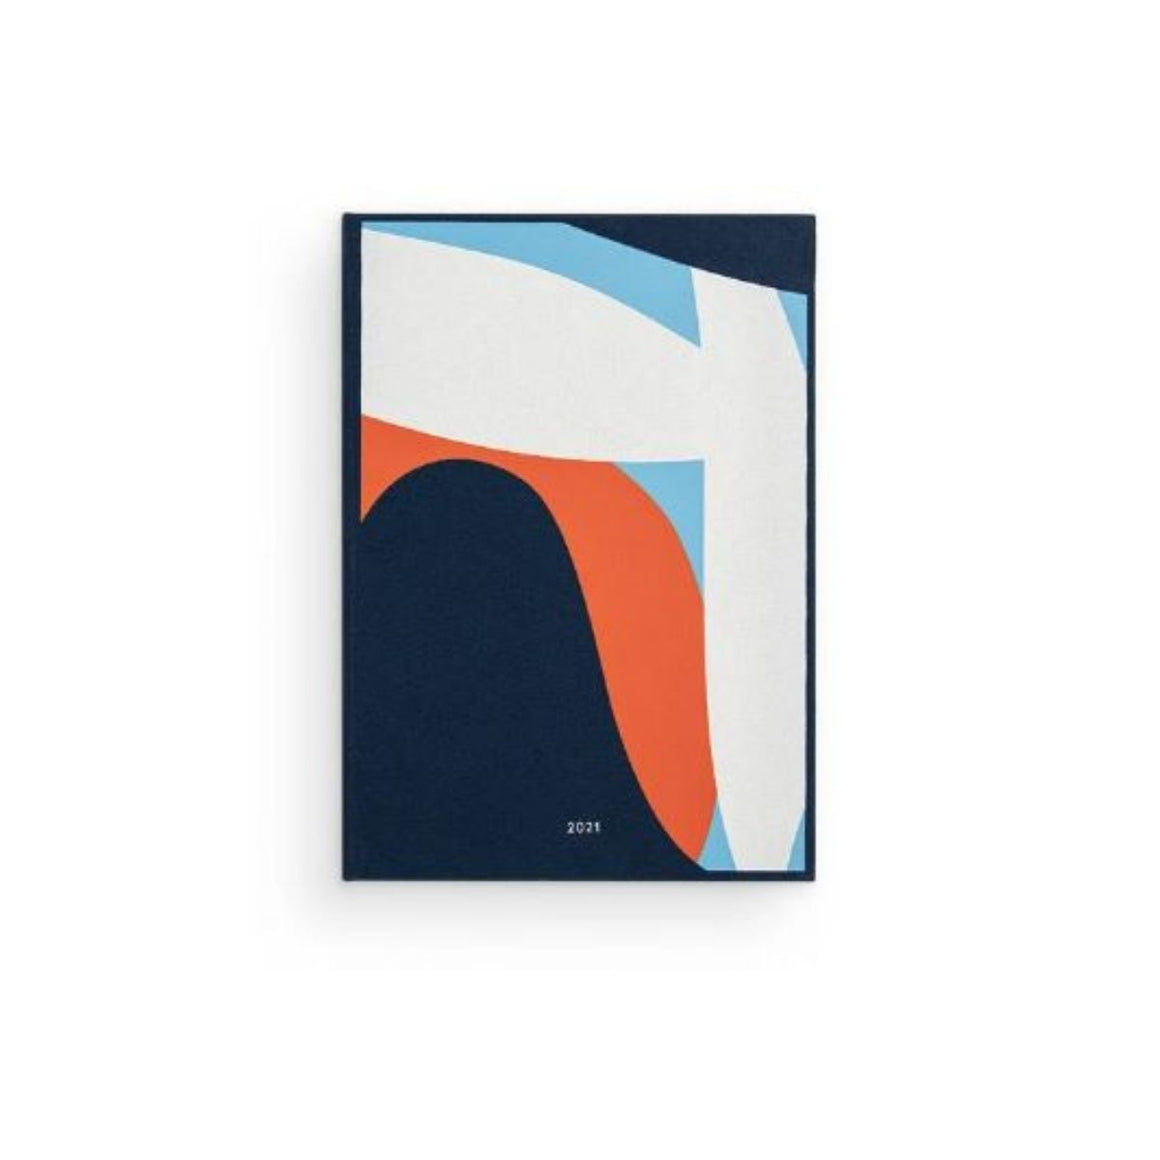 Image featuring the cover of the 2021 dialy non diary ruled which features the colours navy blue, pastel blue, white and orange which features abstract shapes